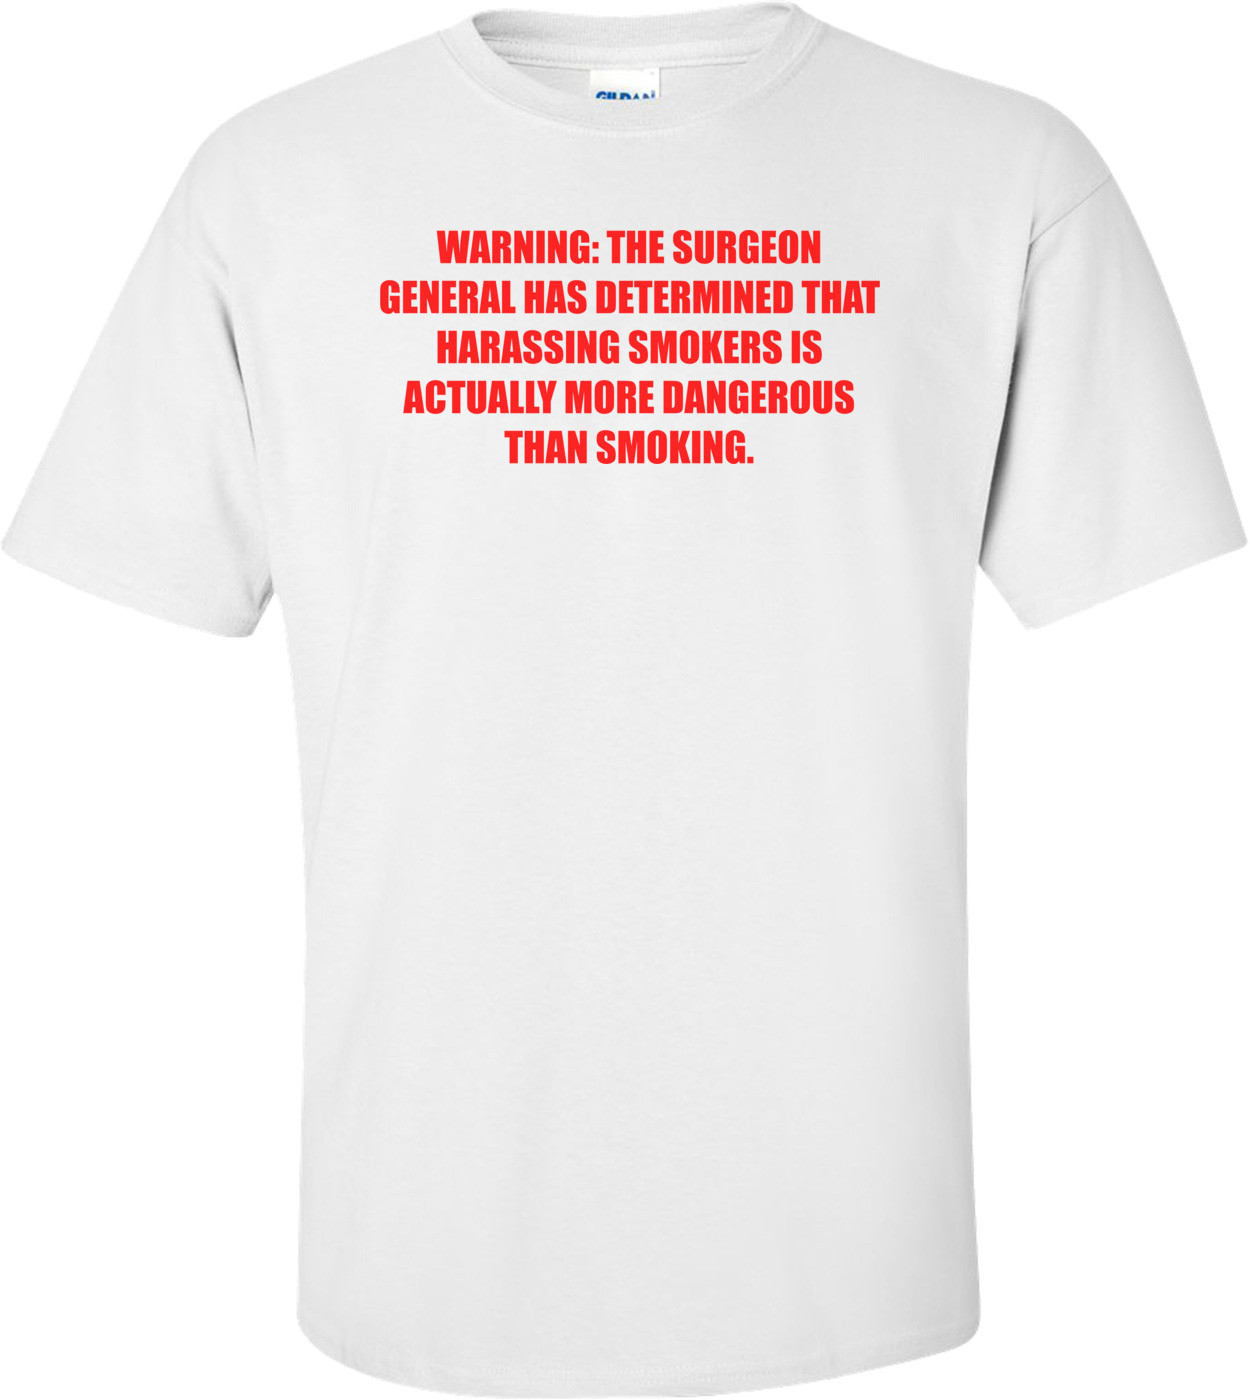 WARNING: THE SURGEON GENERAL HAS DETERMINED THAT HARASSING SMOKERS IS ACTUALLY MORE DANGEROUS THAN SMOKING. Shirt